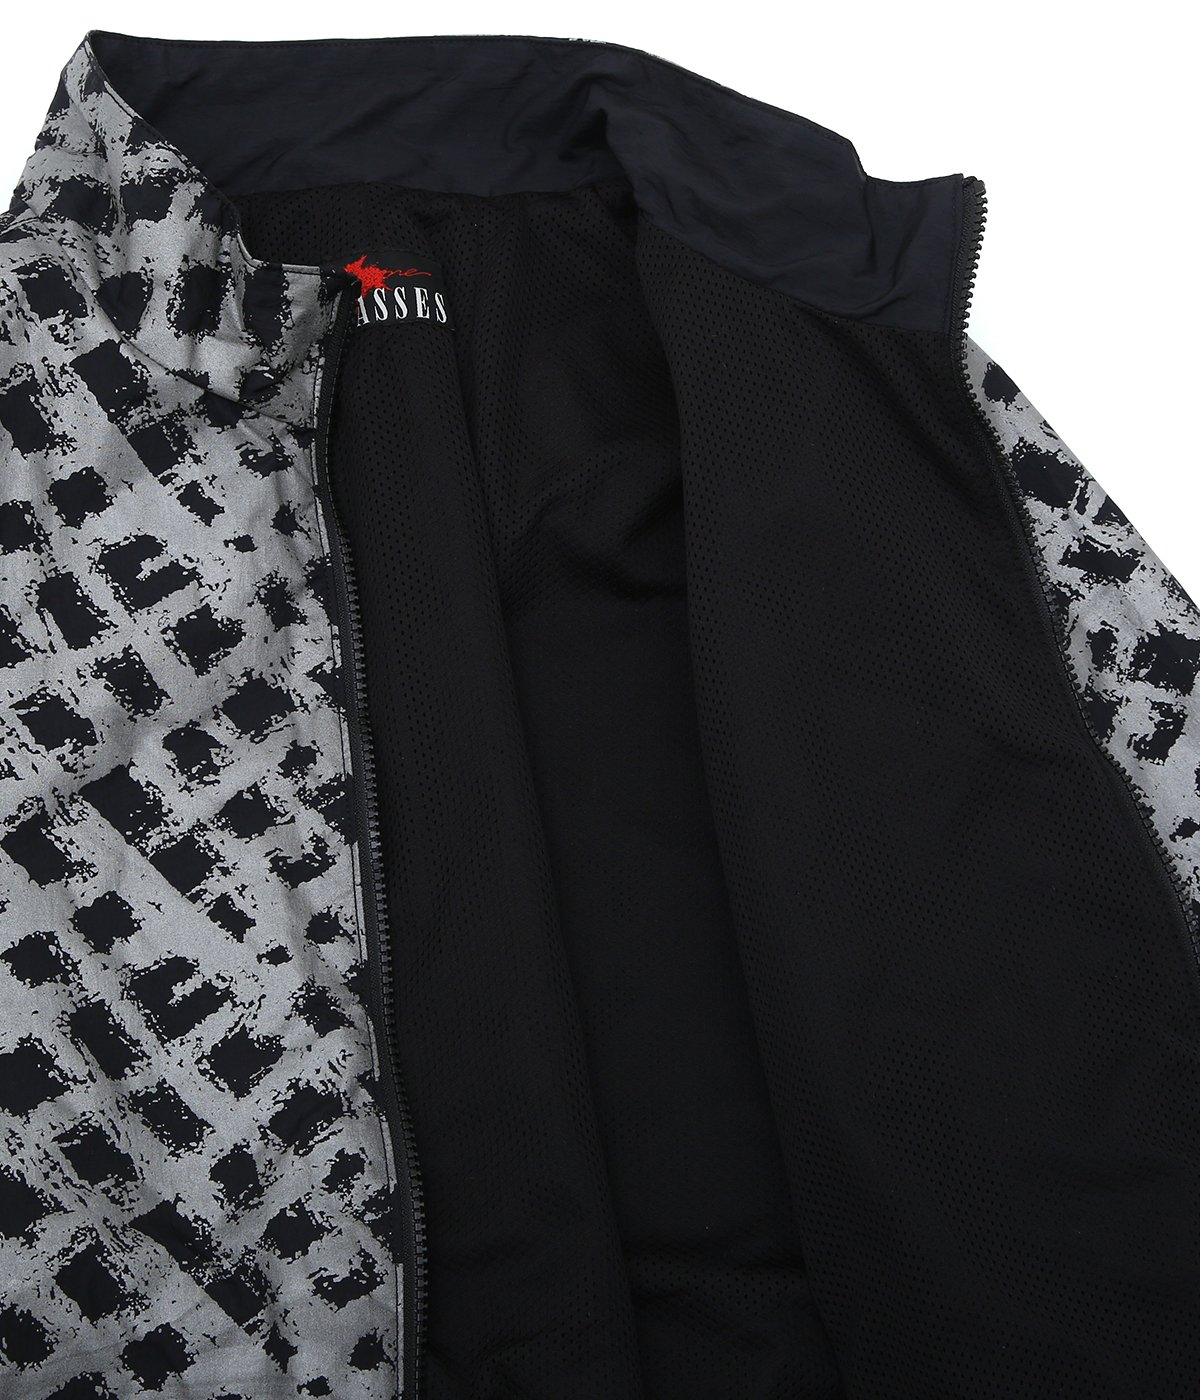 NYLON JKT EXECUTION P